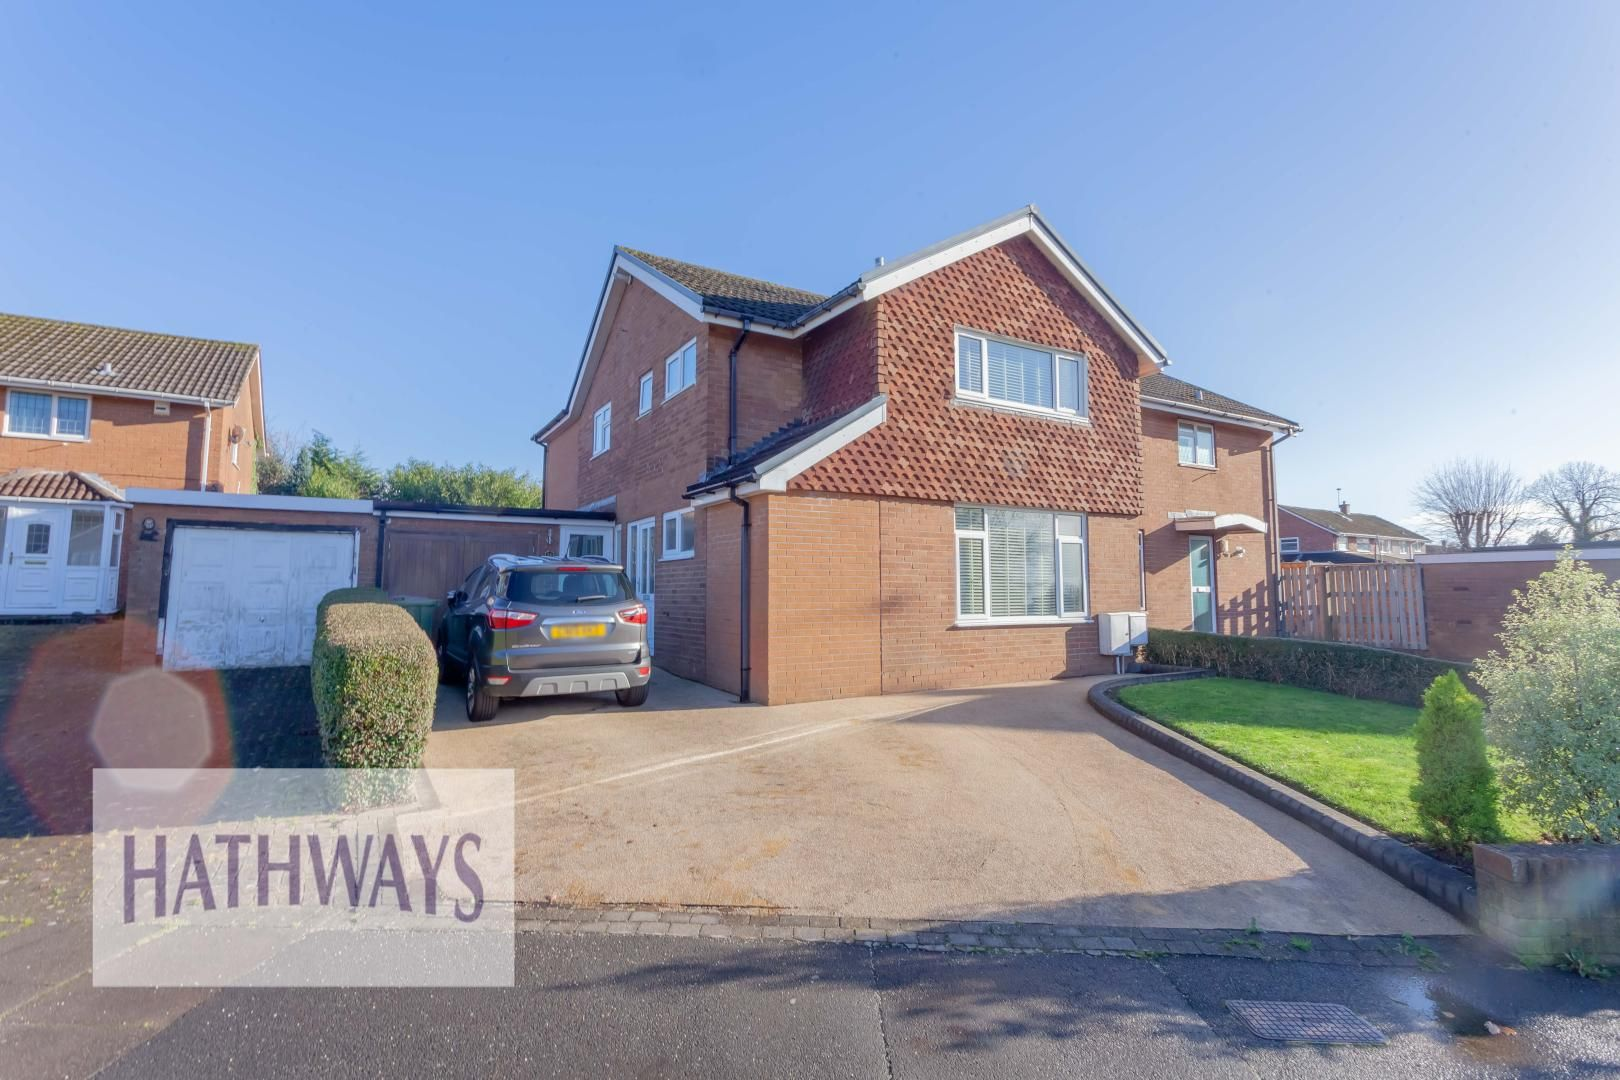 4 bed house for sale in Llanyravon Way, NP44